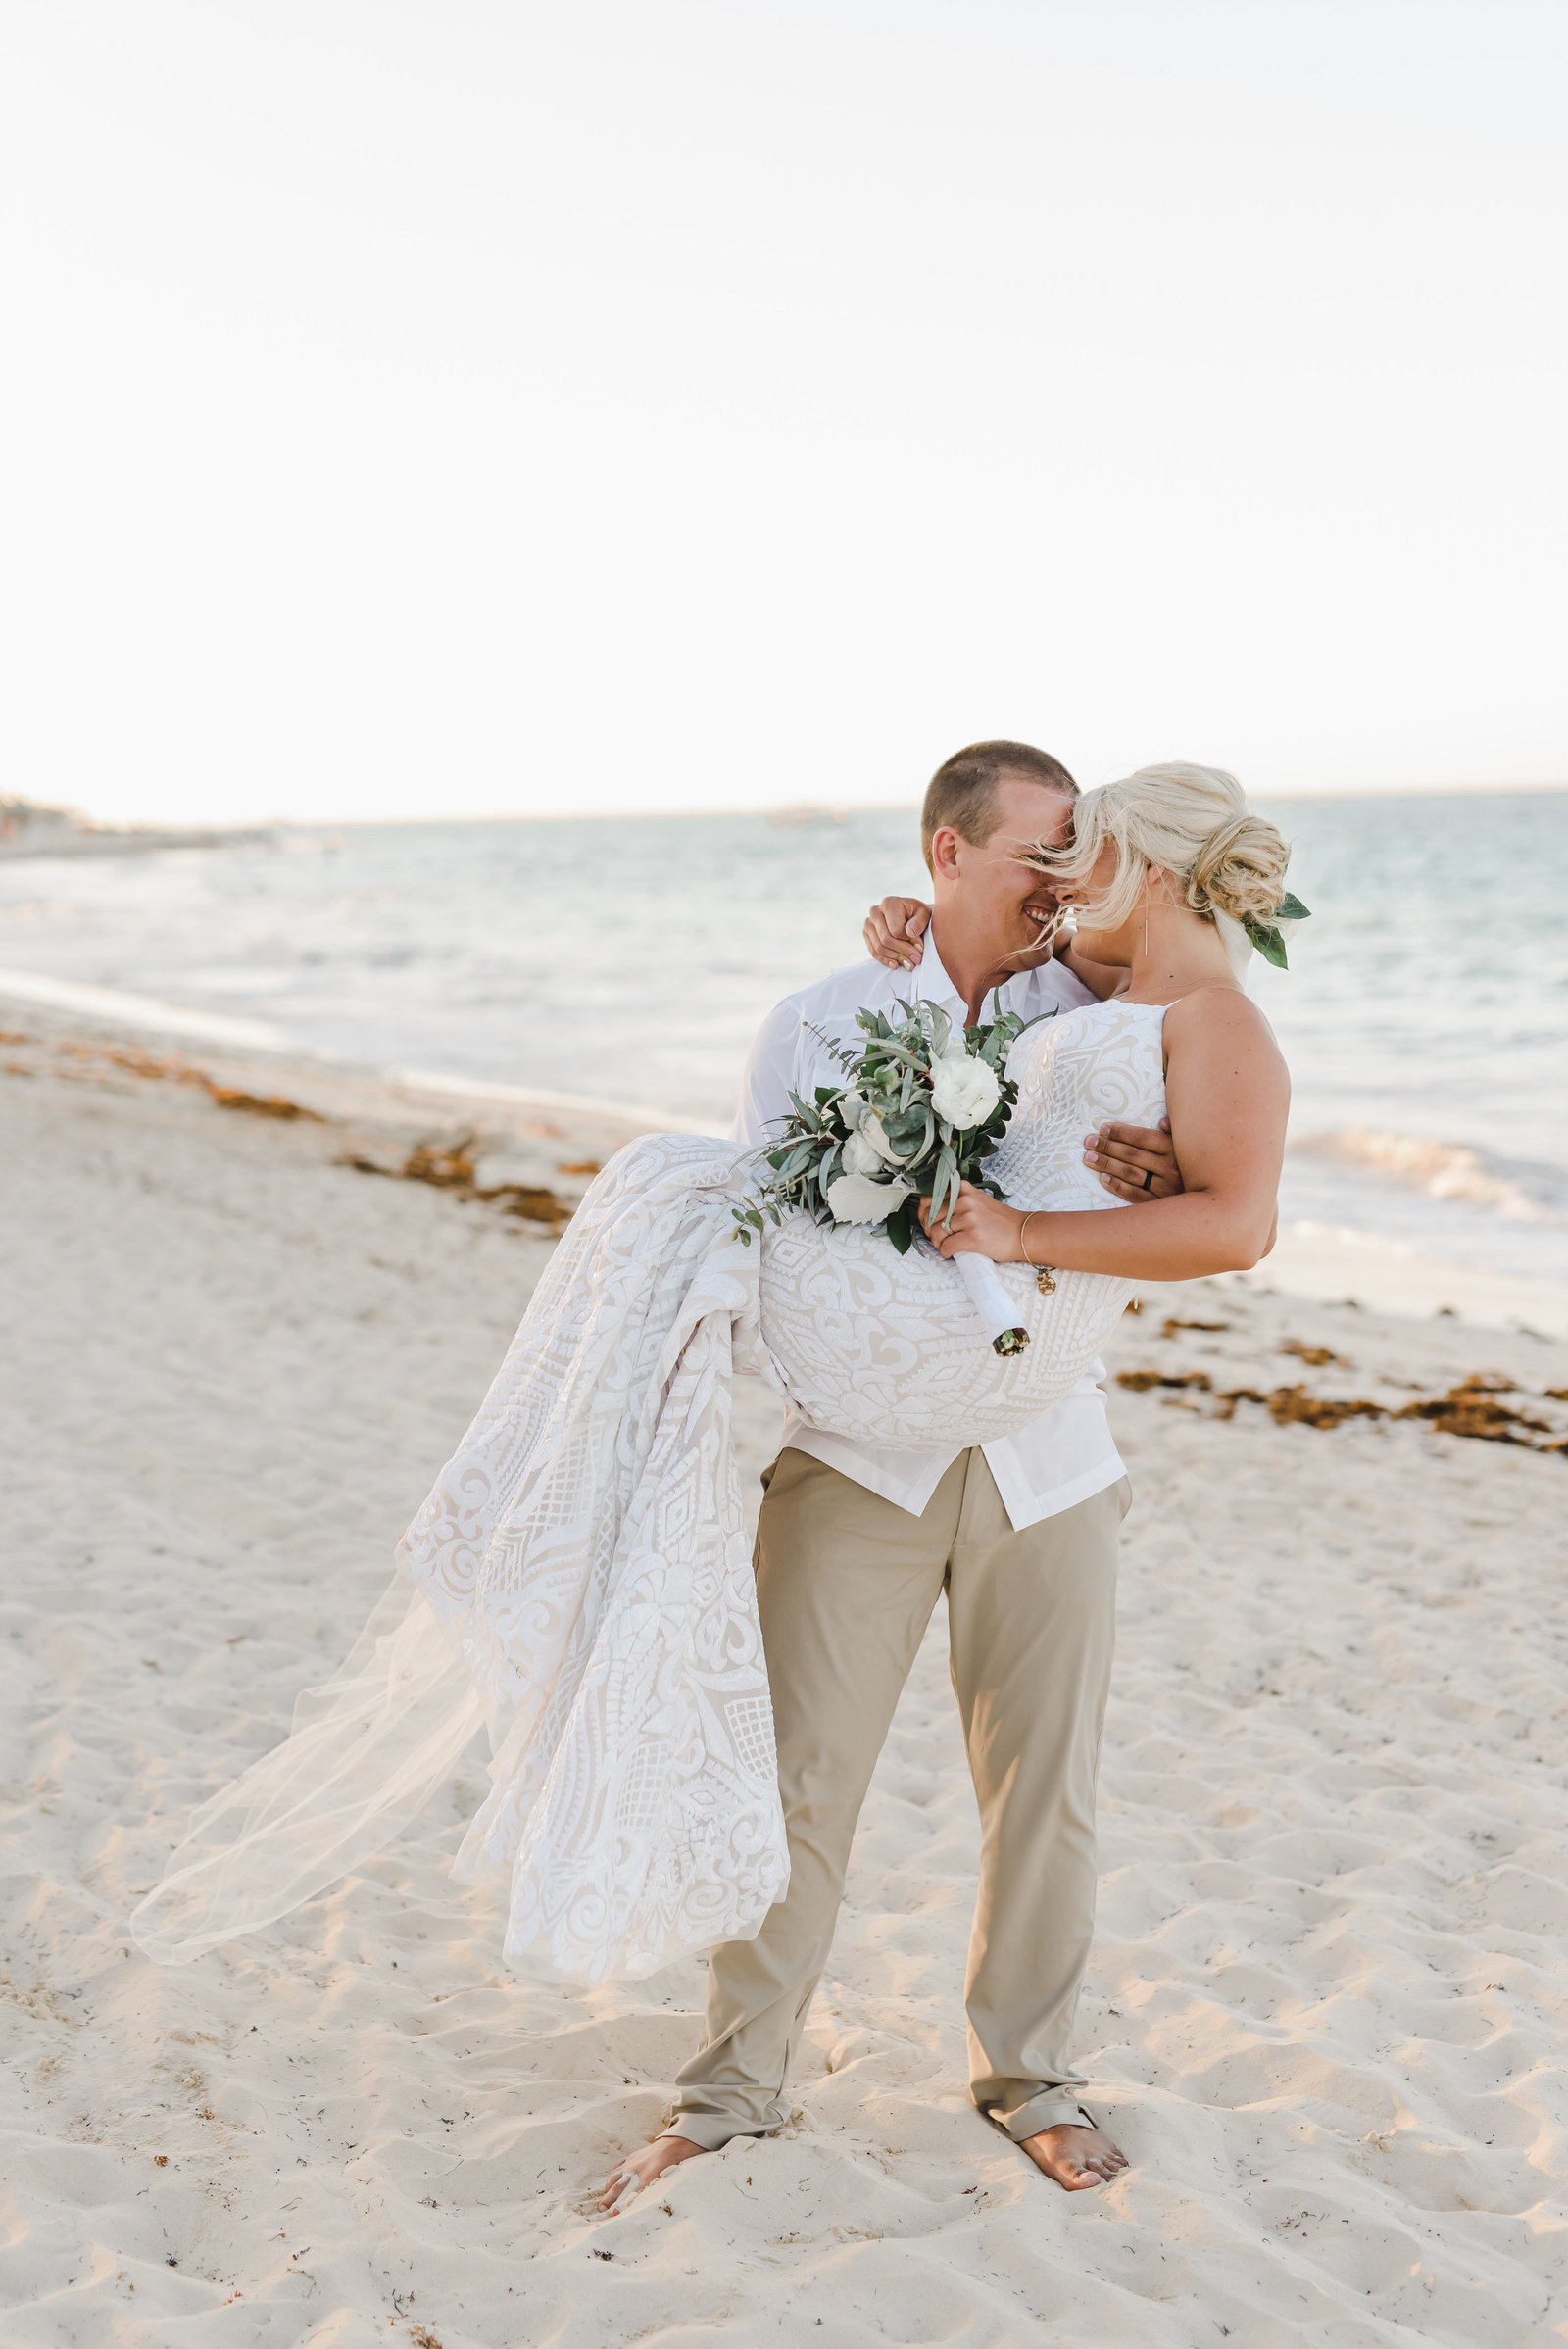 Destination Wedding Photographer | Hannah Bryerton